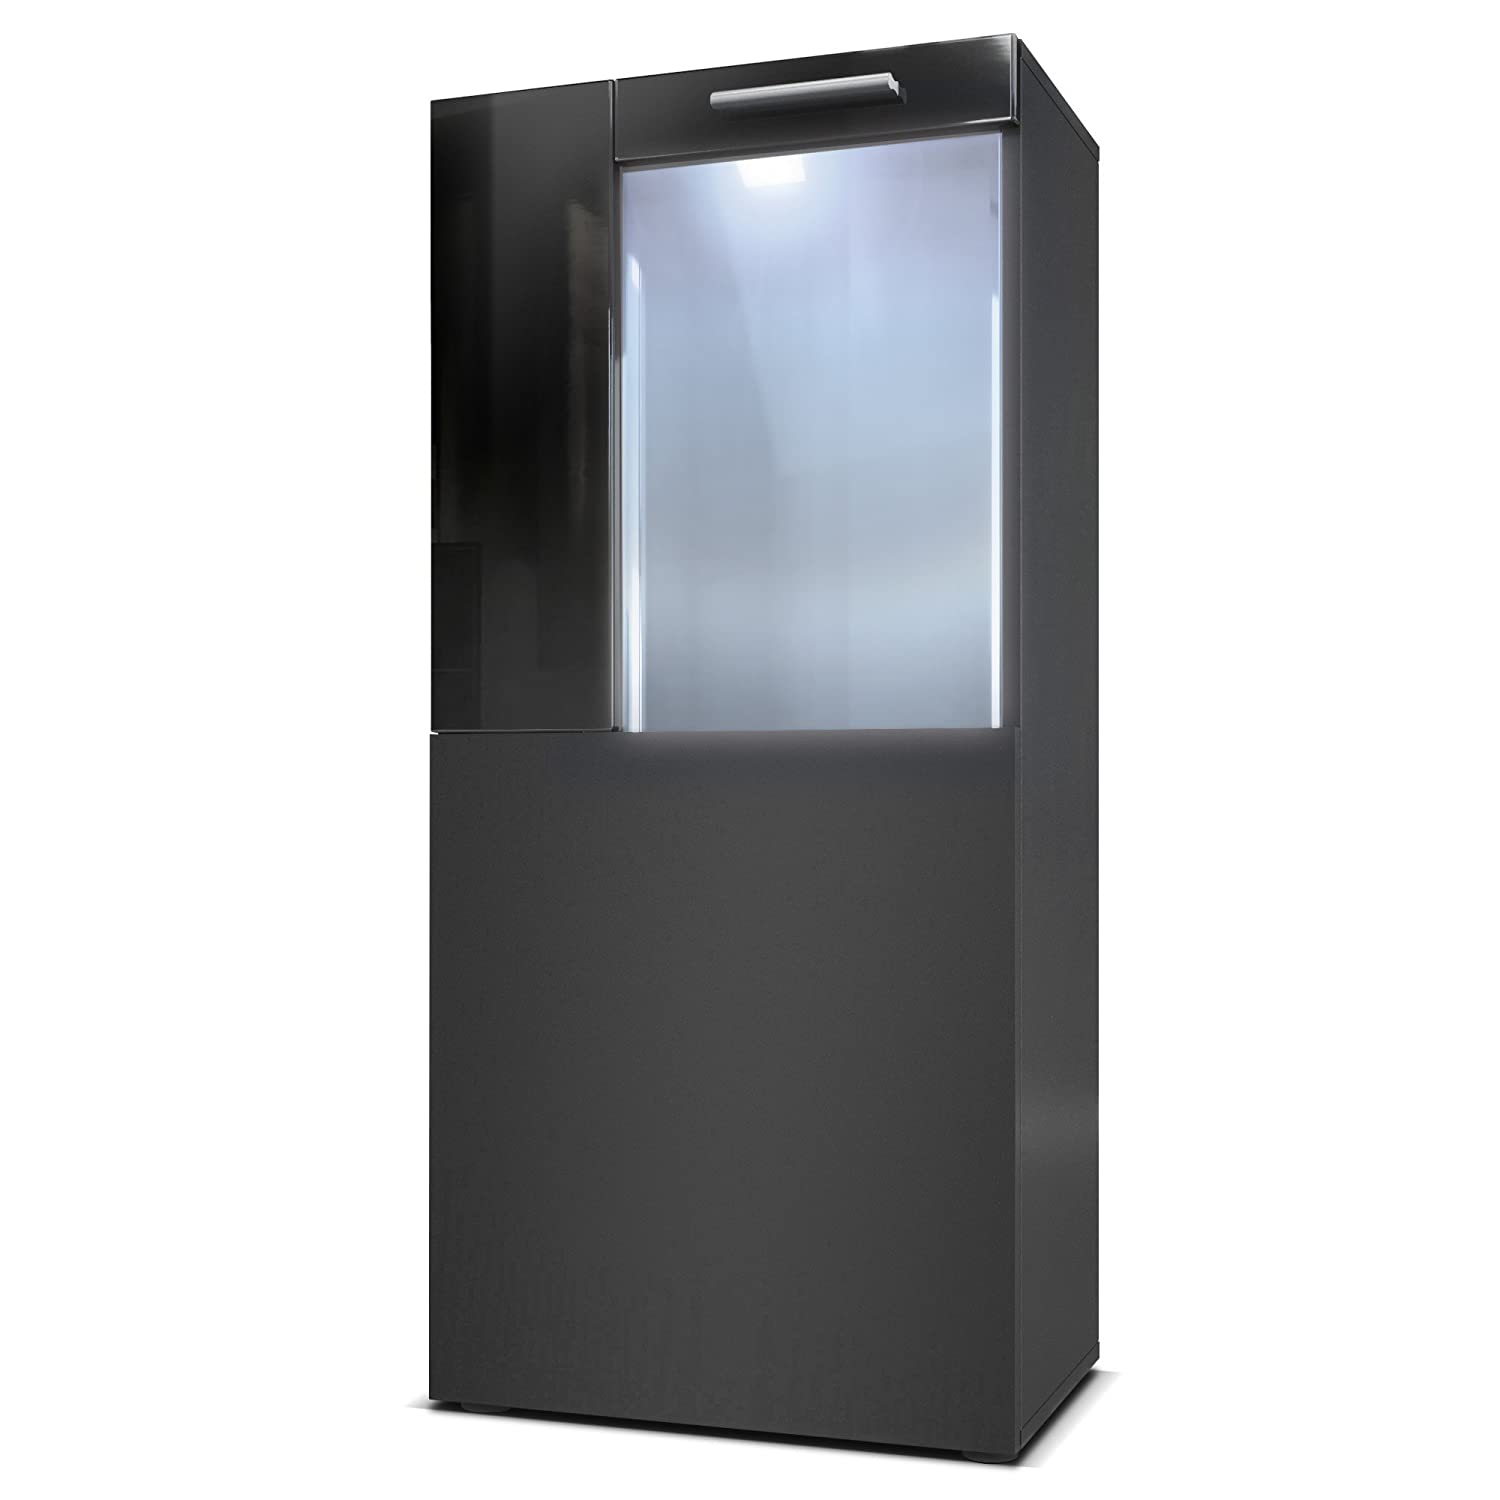 Offsets in Black High Gloss with White LED lights Vladon Tall Display Cabinet Cupboard Movie, Carcass in Black matt Front in Black matt Offsets in Black High Gloss